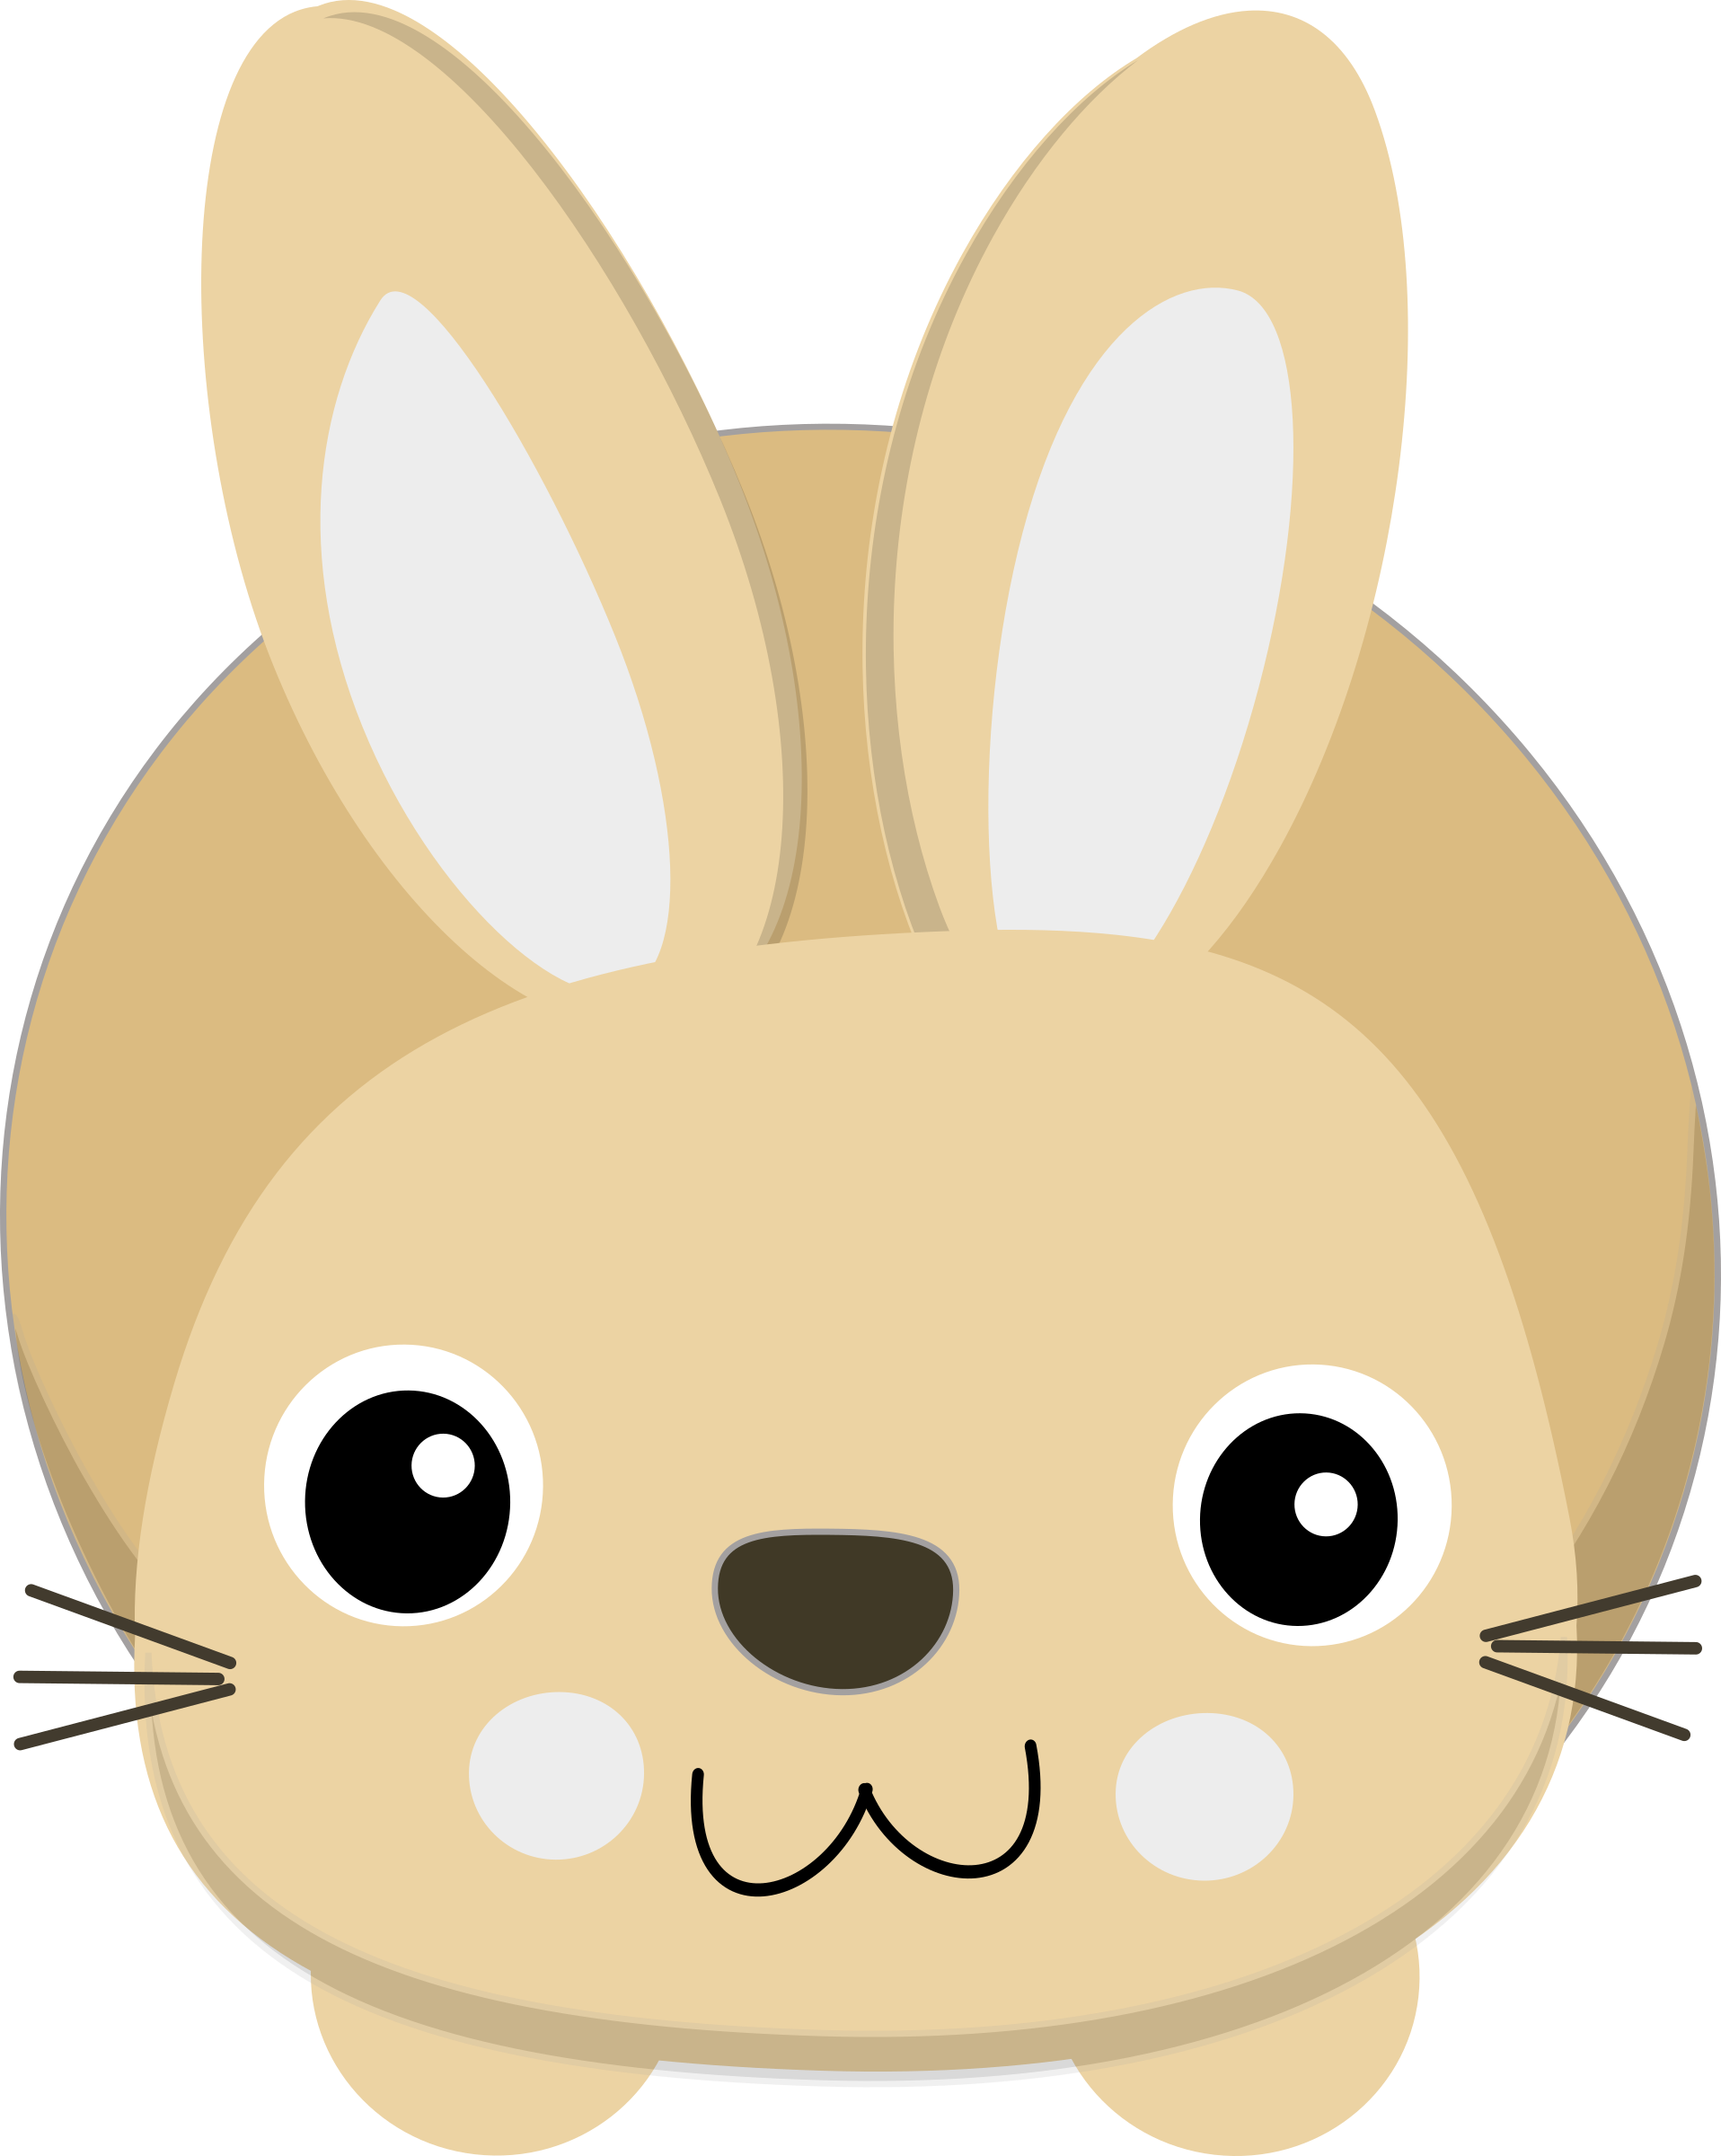 Cute Bunny Looking Up Clipart.